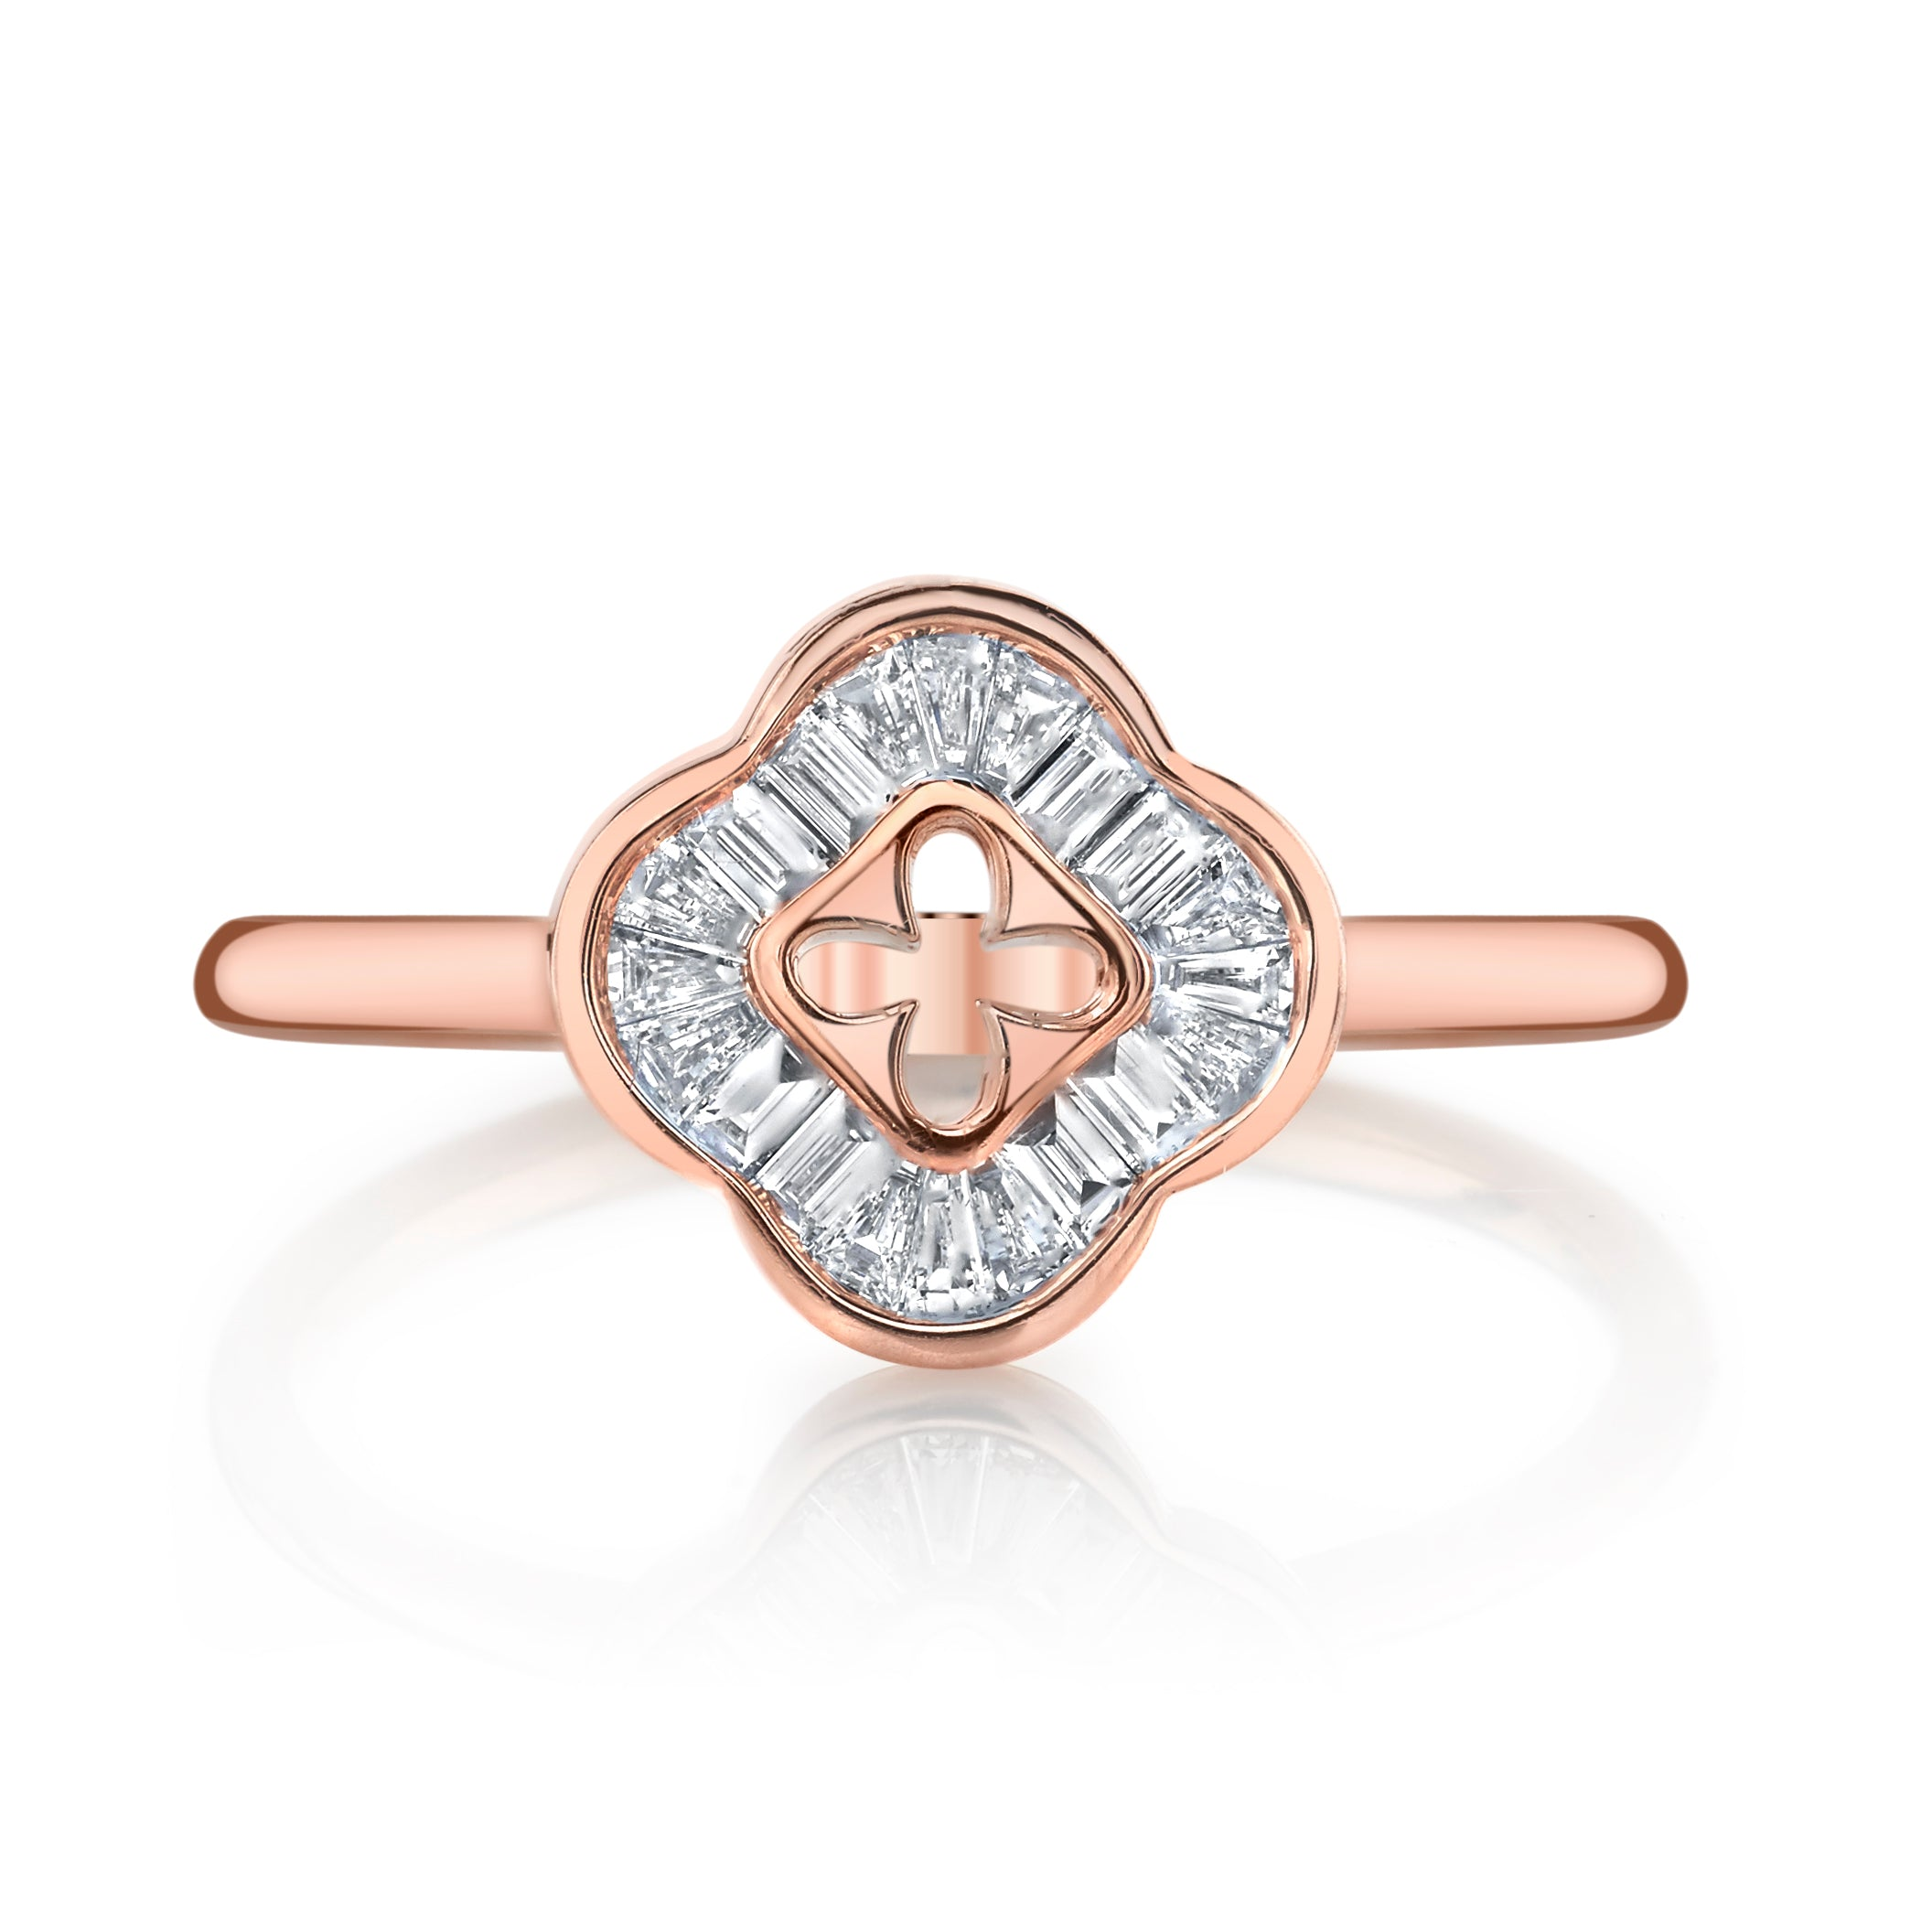 Mars Jewelry 14K Rose Gold Fashion Ring w/ Diamond Baguette Accents 26893